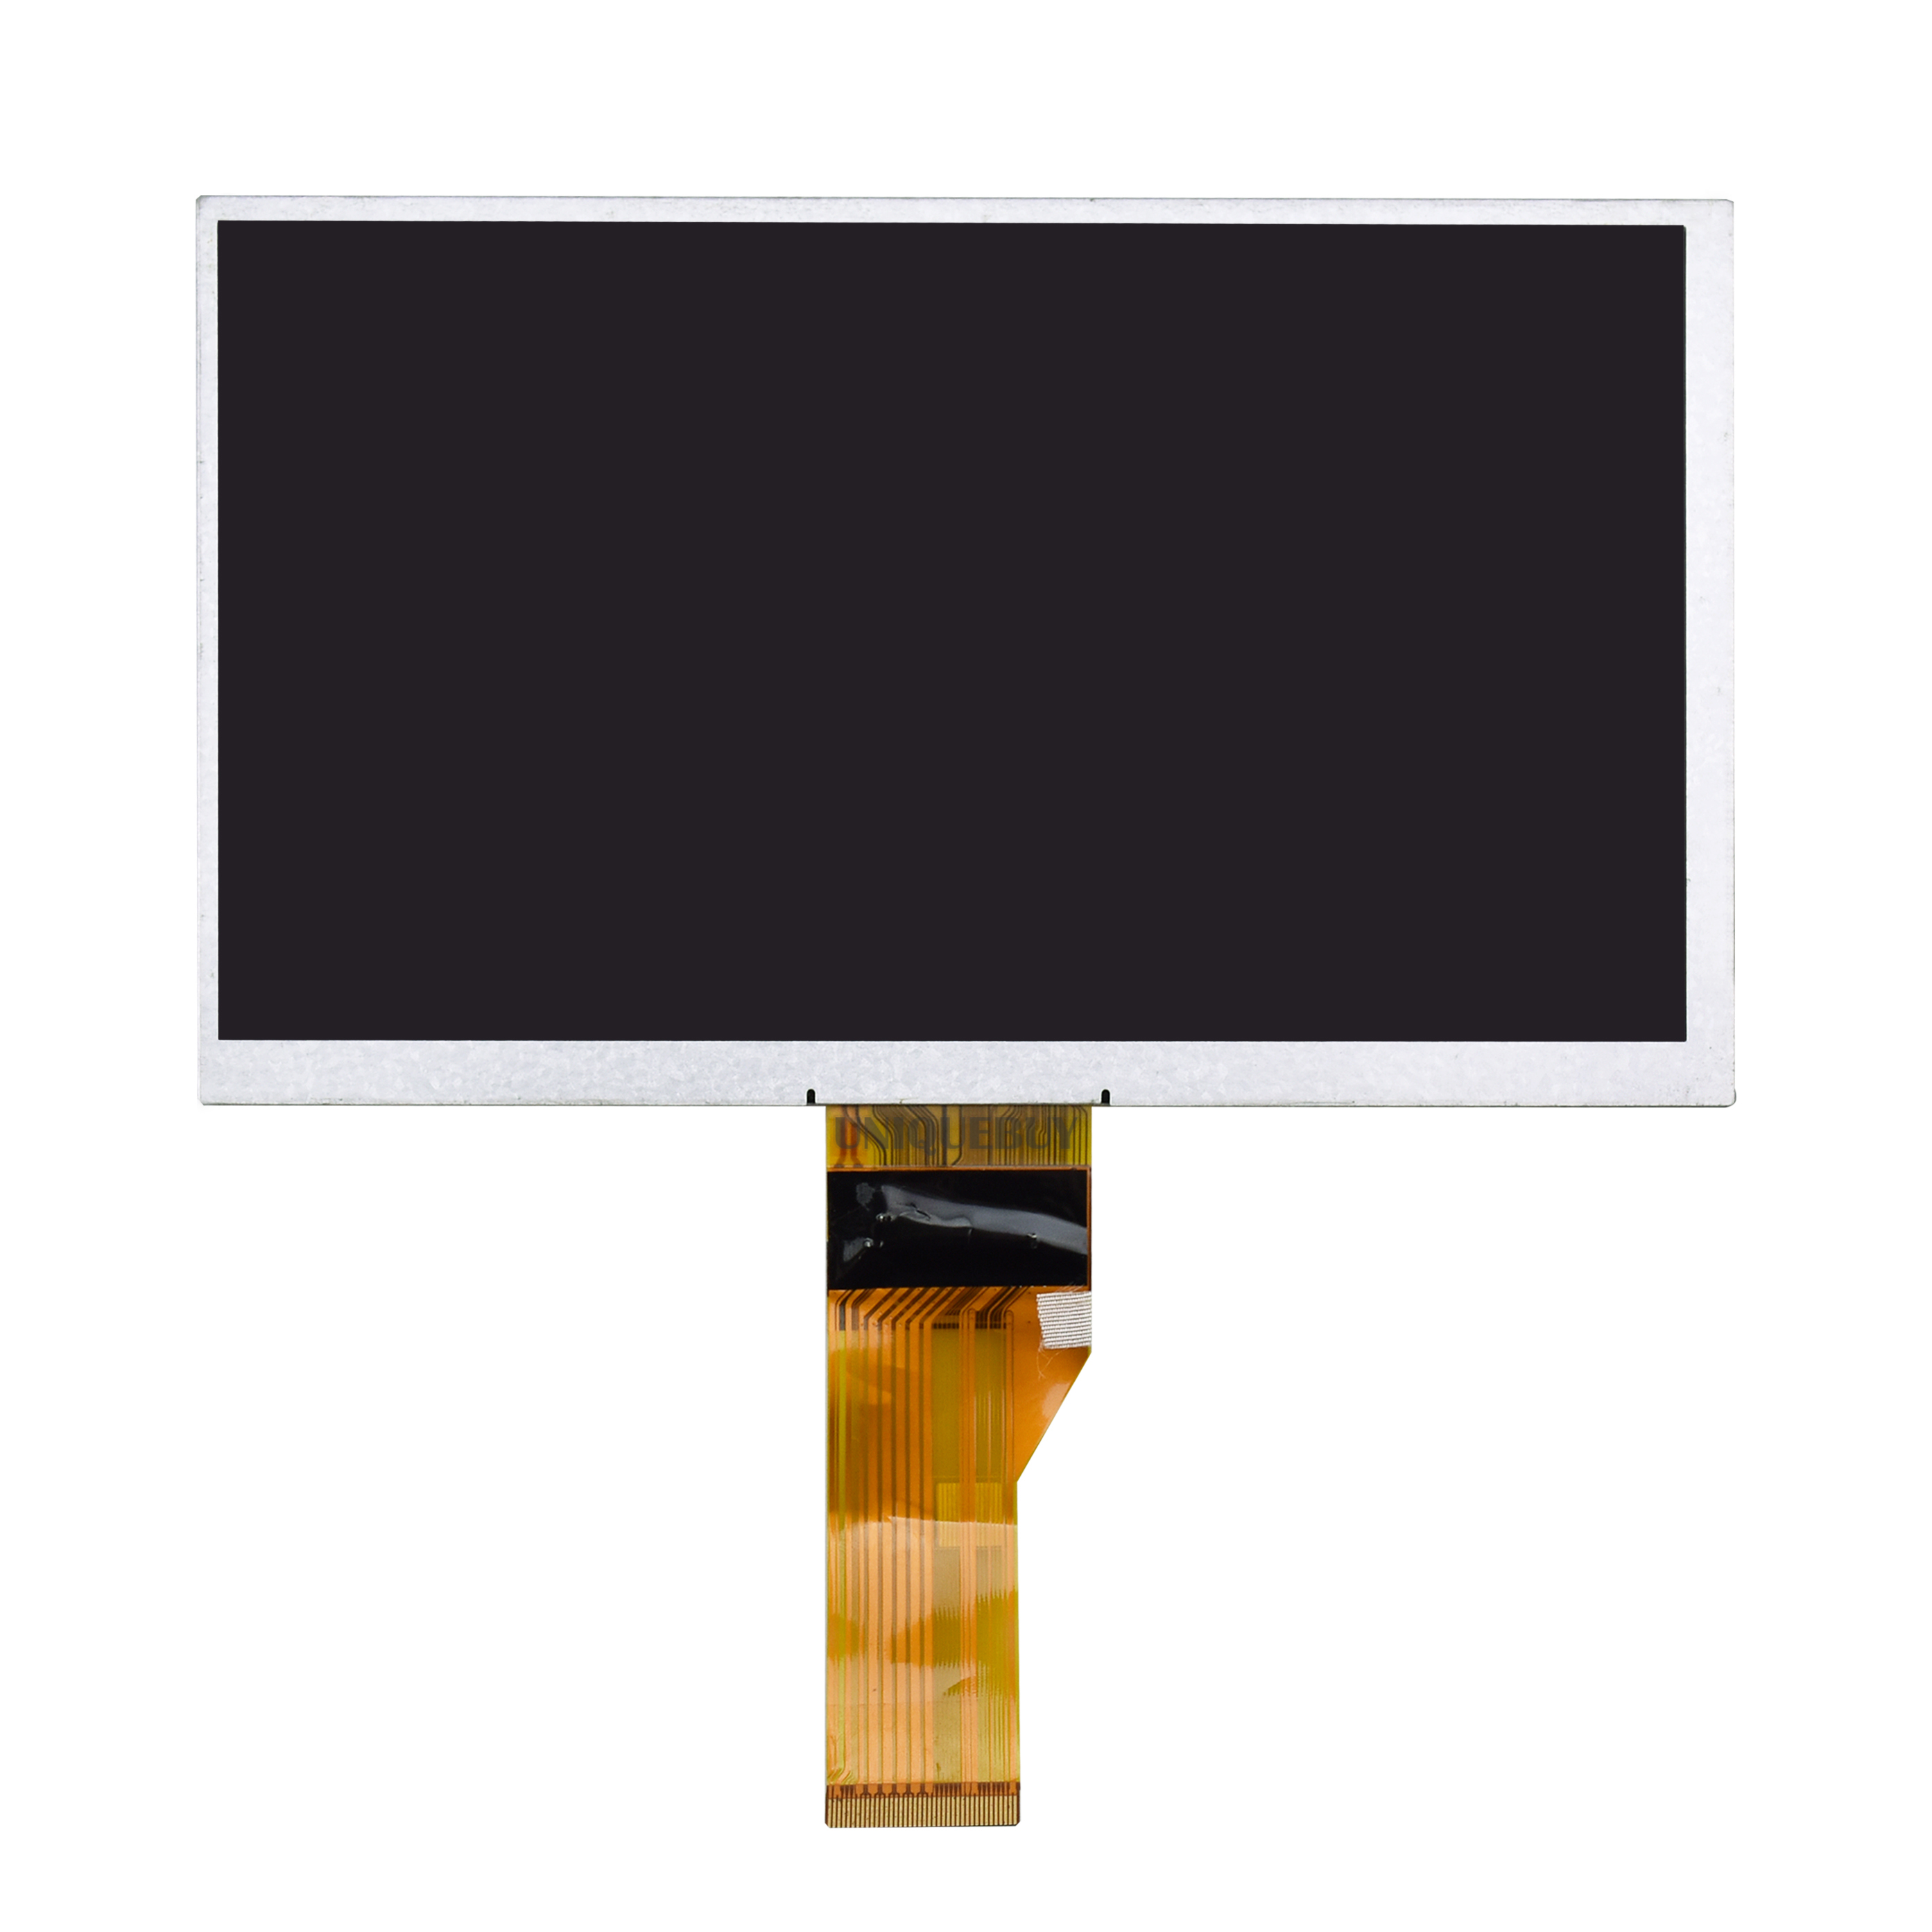 7 inch for Chi Mei LCD display P070BAG CM1 Digitizer Replacement